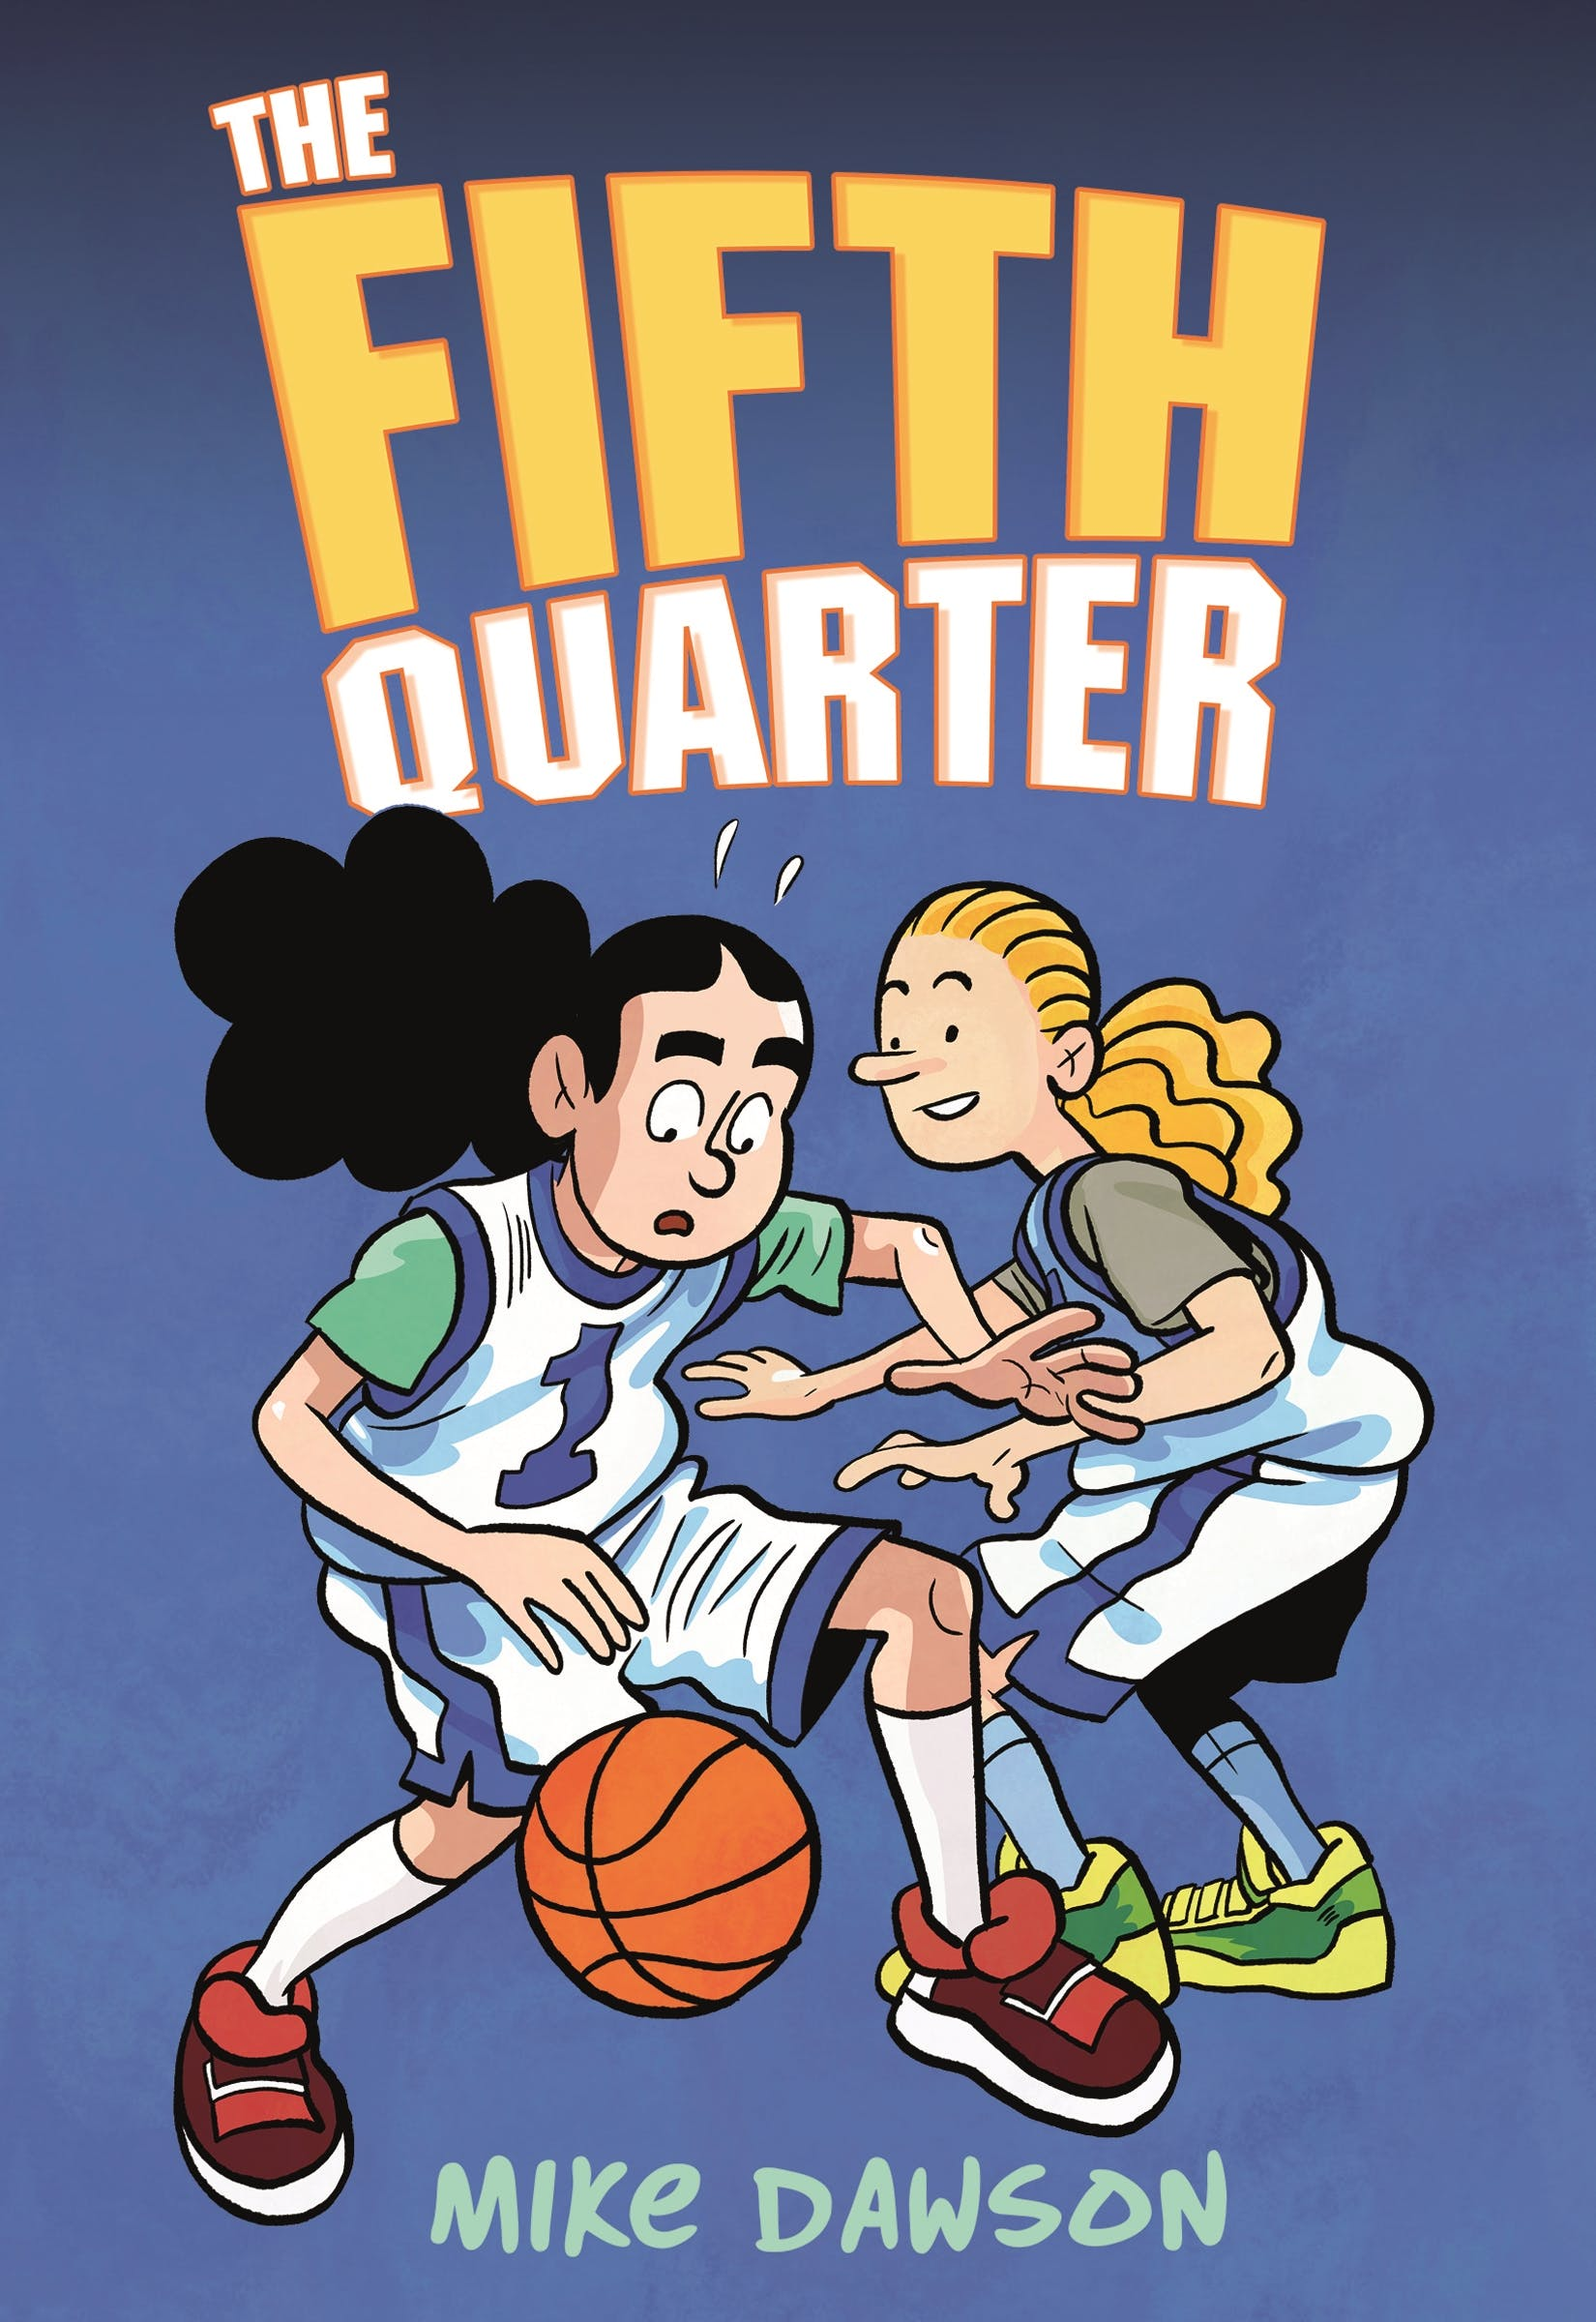 Image of The Fifth Quarter